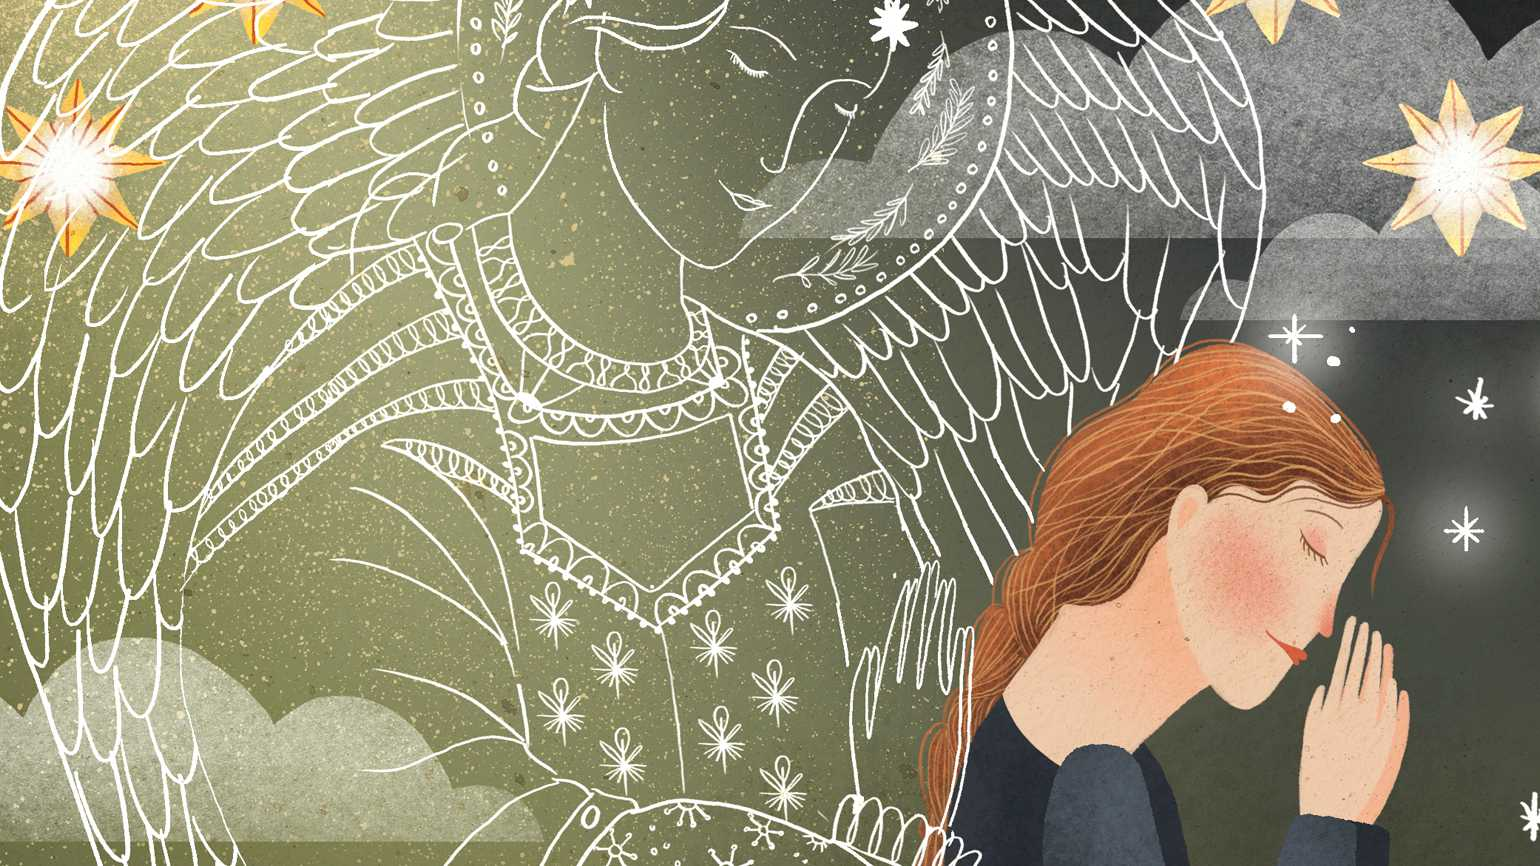 A woman praying as a angel hovers behind her; Illustration by Amalia Restrepo